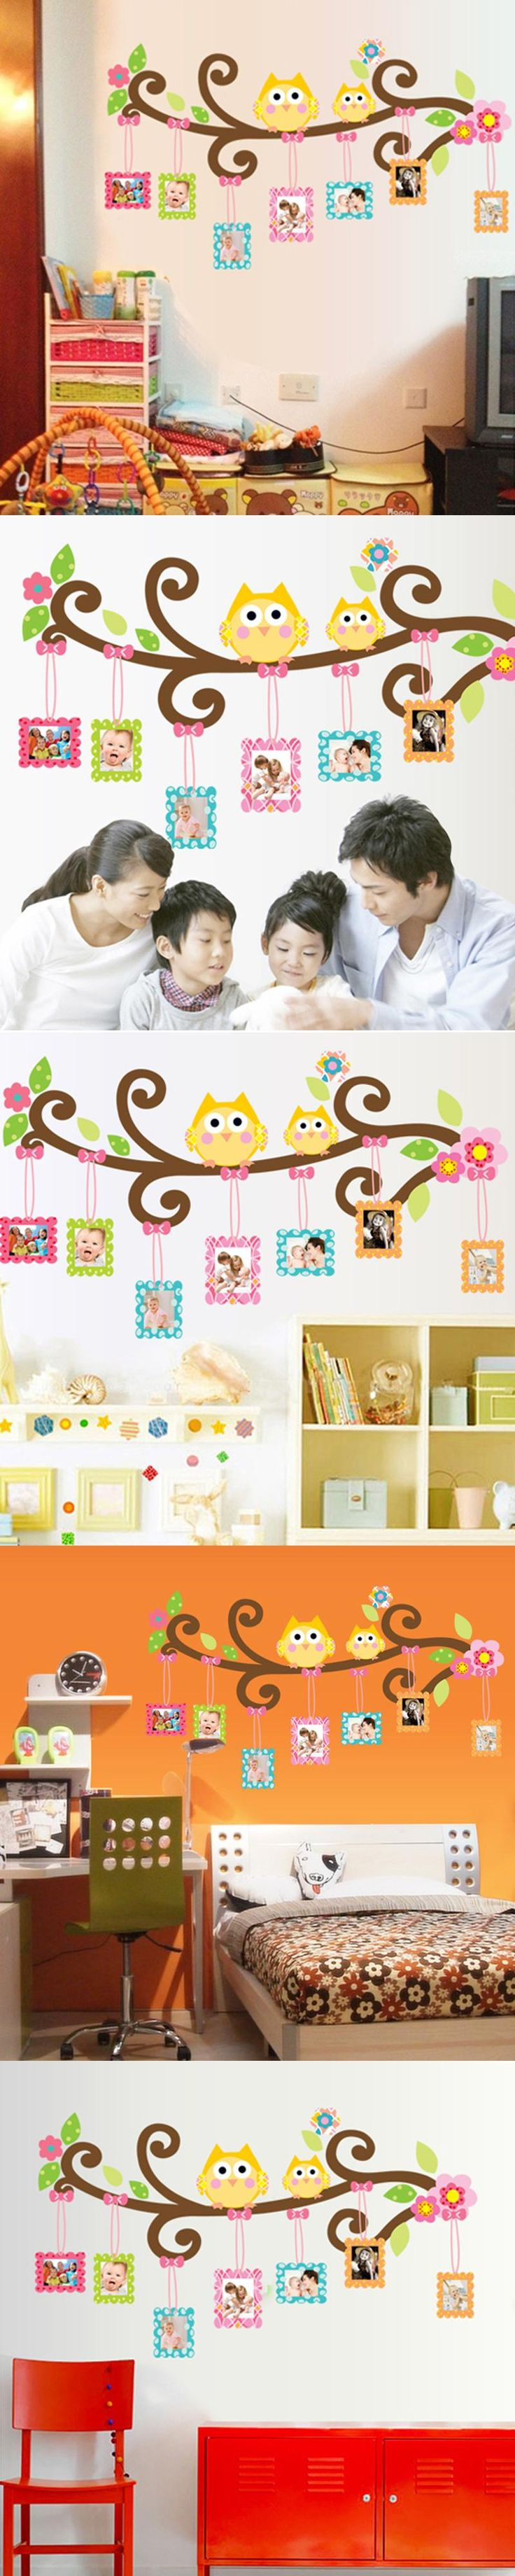 Cute Owl Cartoon Wall Stickers Removable Kids Room Bedroom Creative Decorated Background Wall Stickers